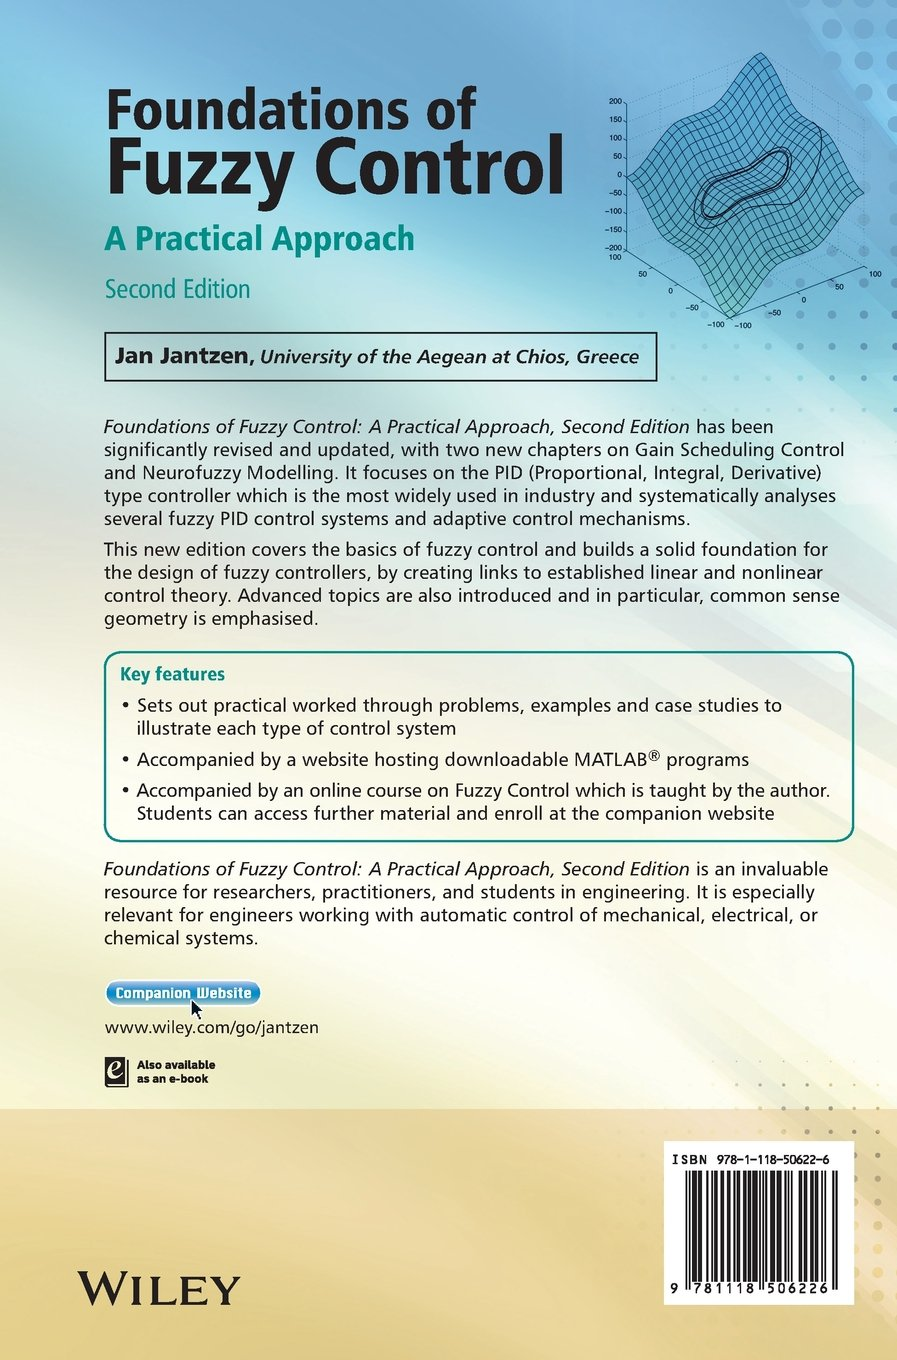 Read e-book Foundations of Fuzzy Control: A Practical Approach